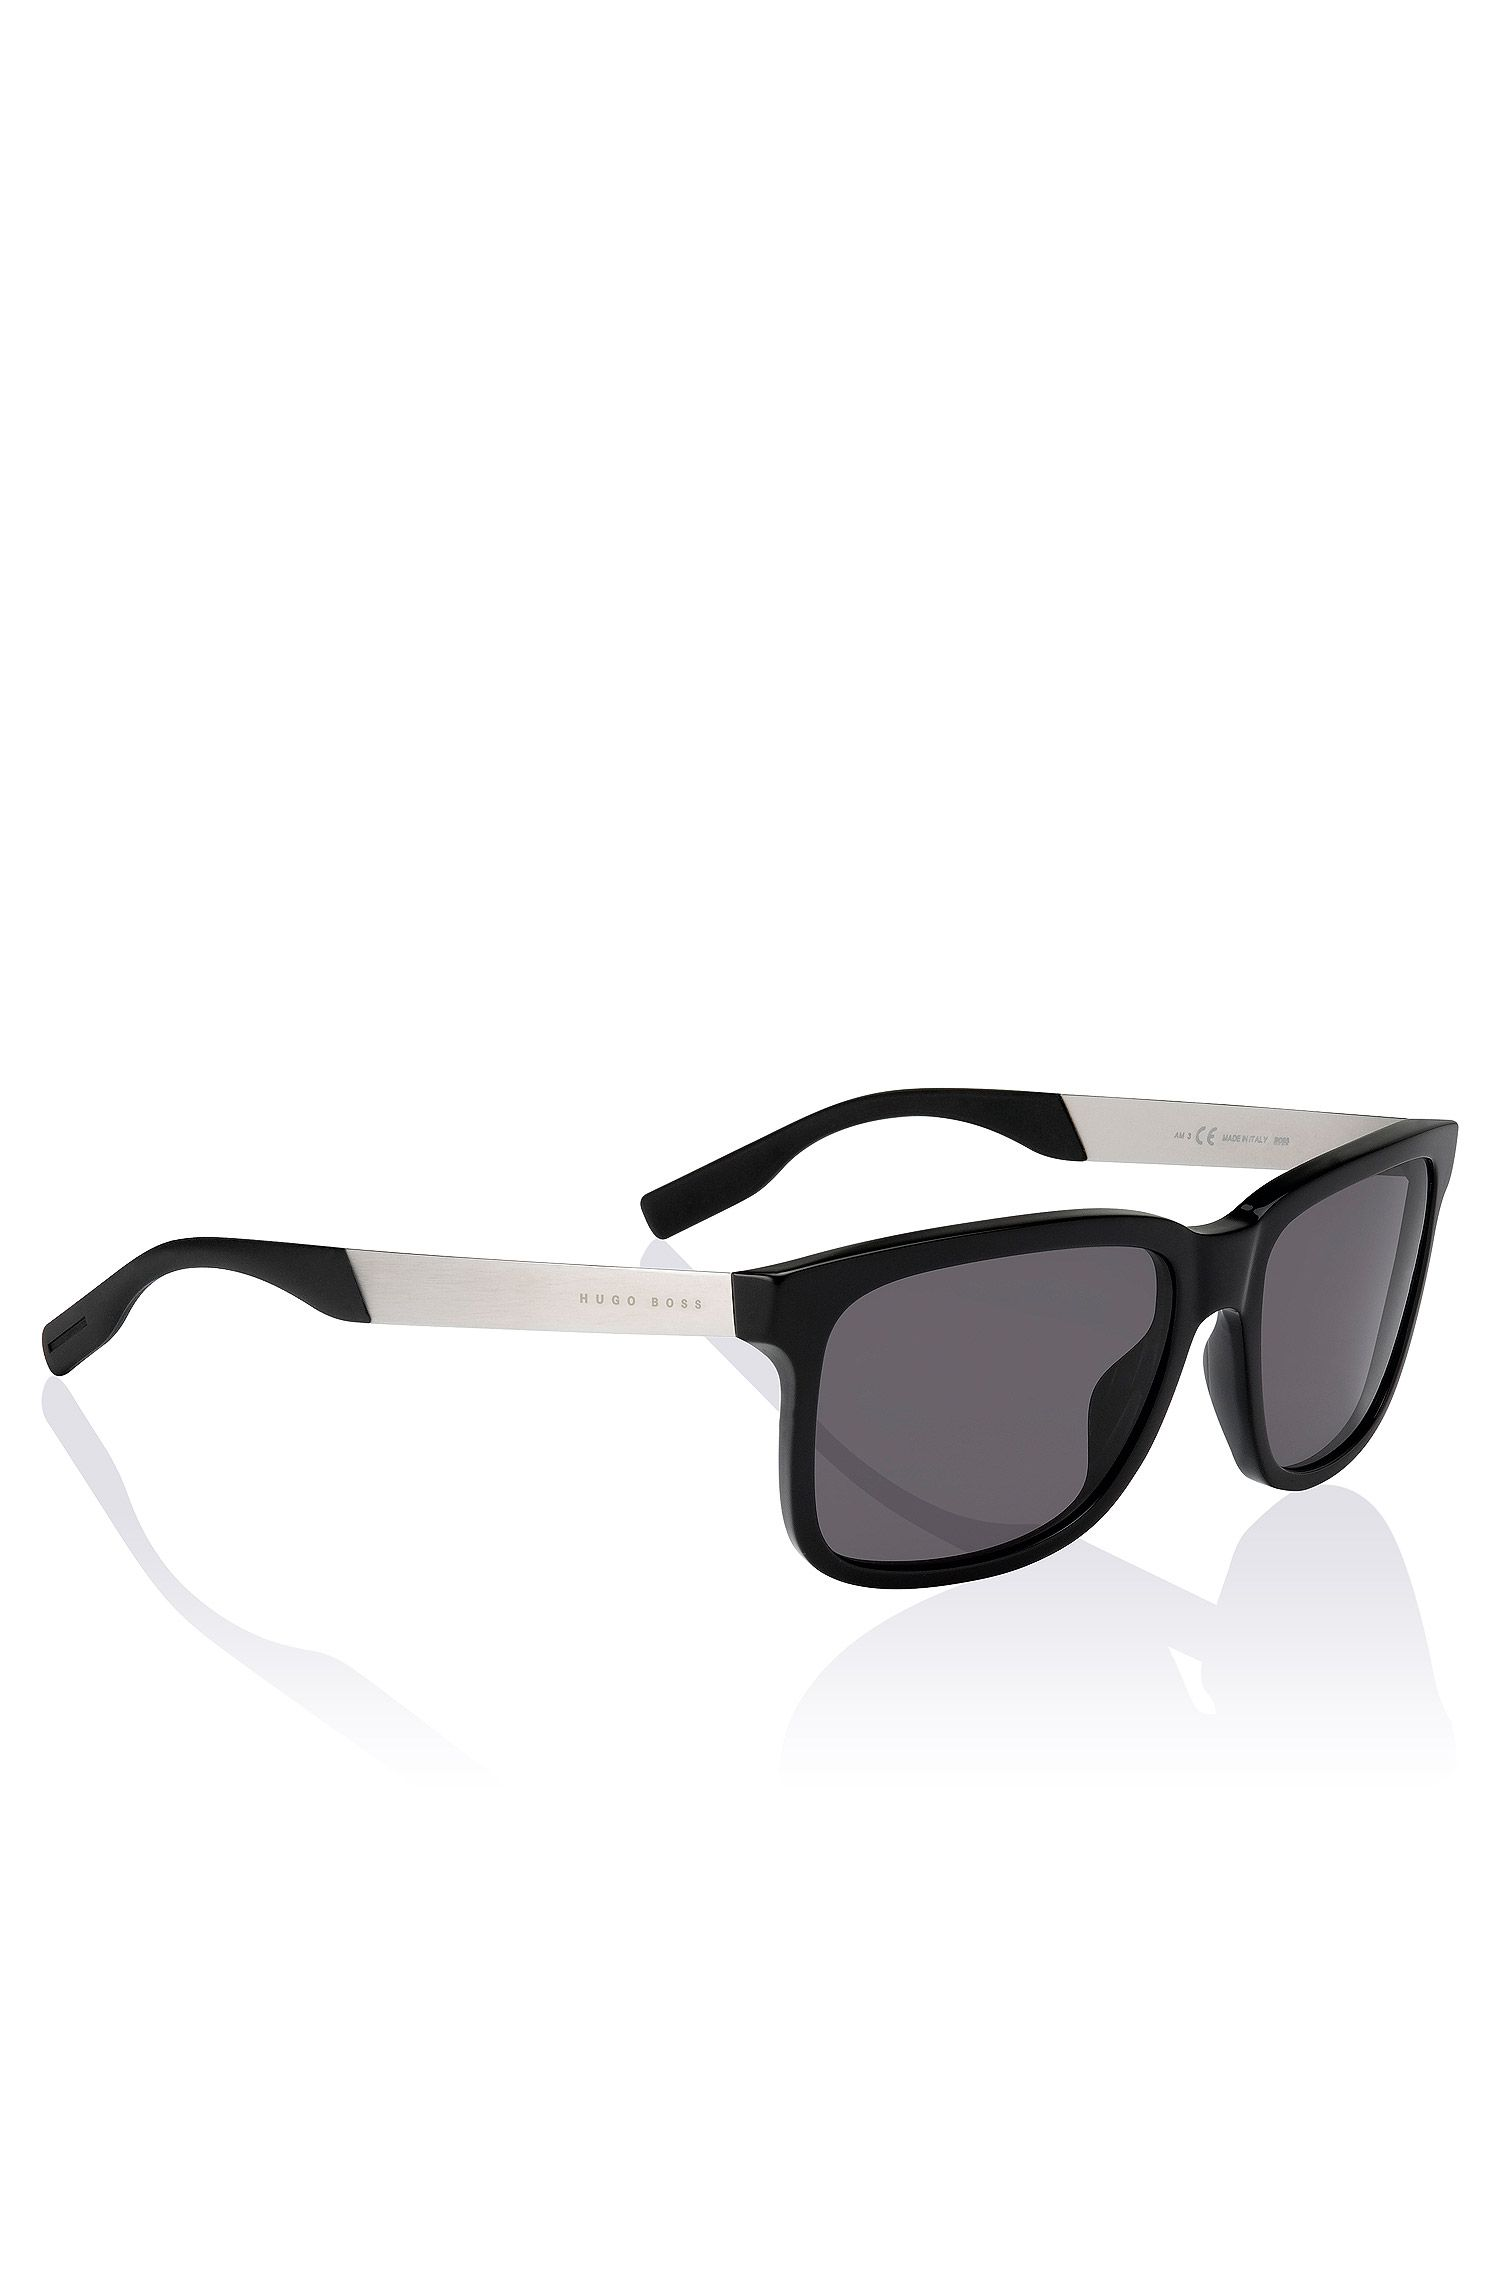 Sunglasses 'BOSS 0553/SFB8553H'